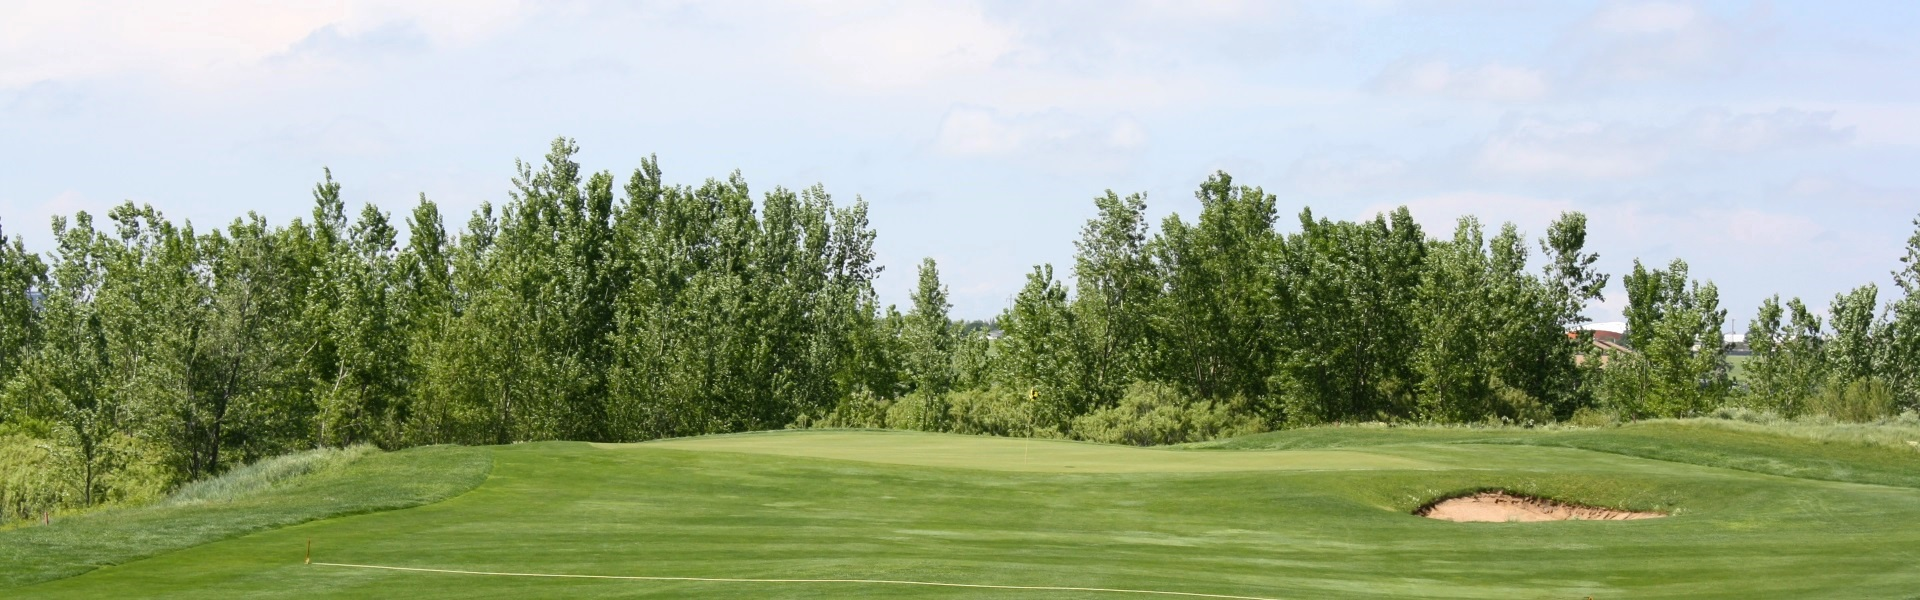 Comanche Trails golf green